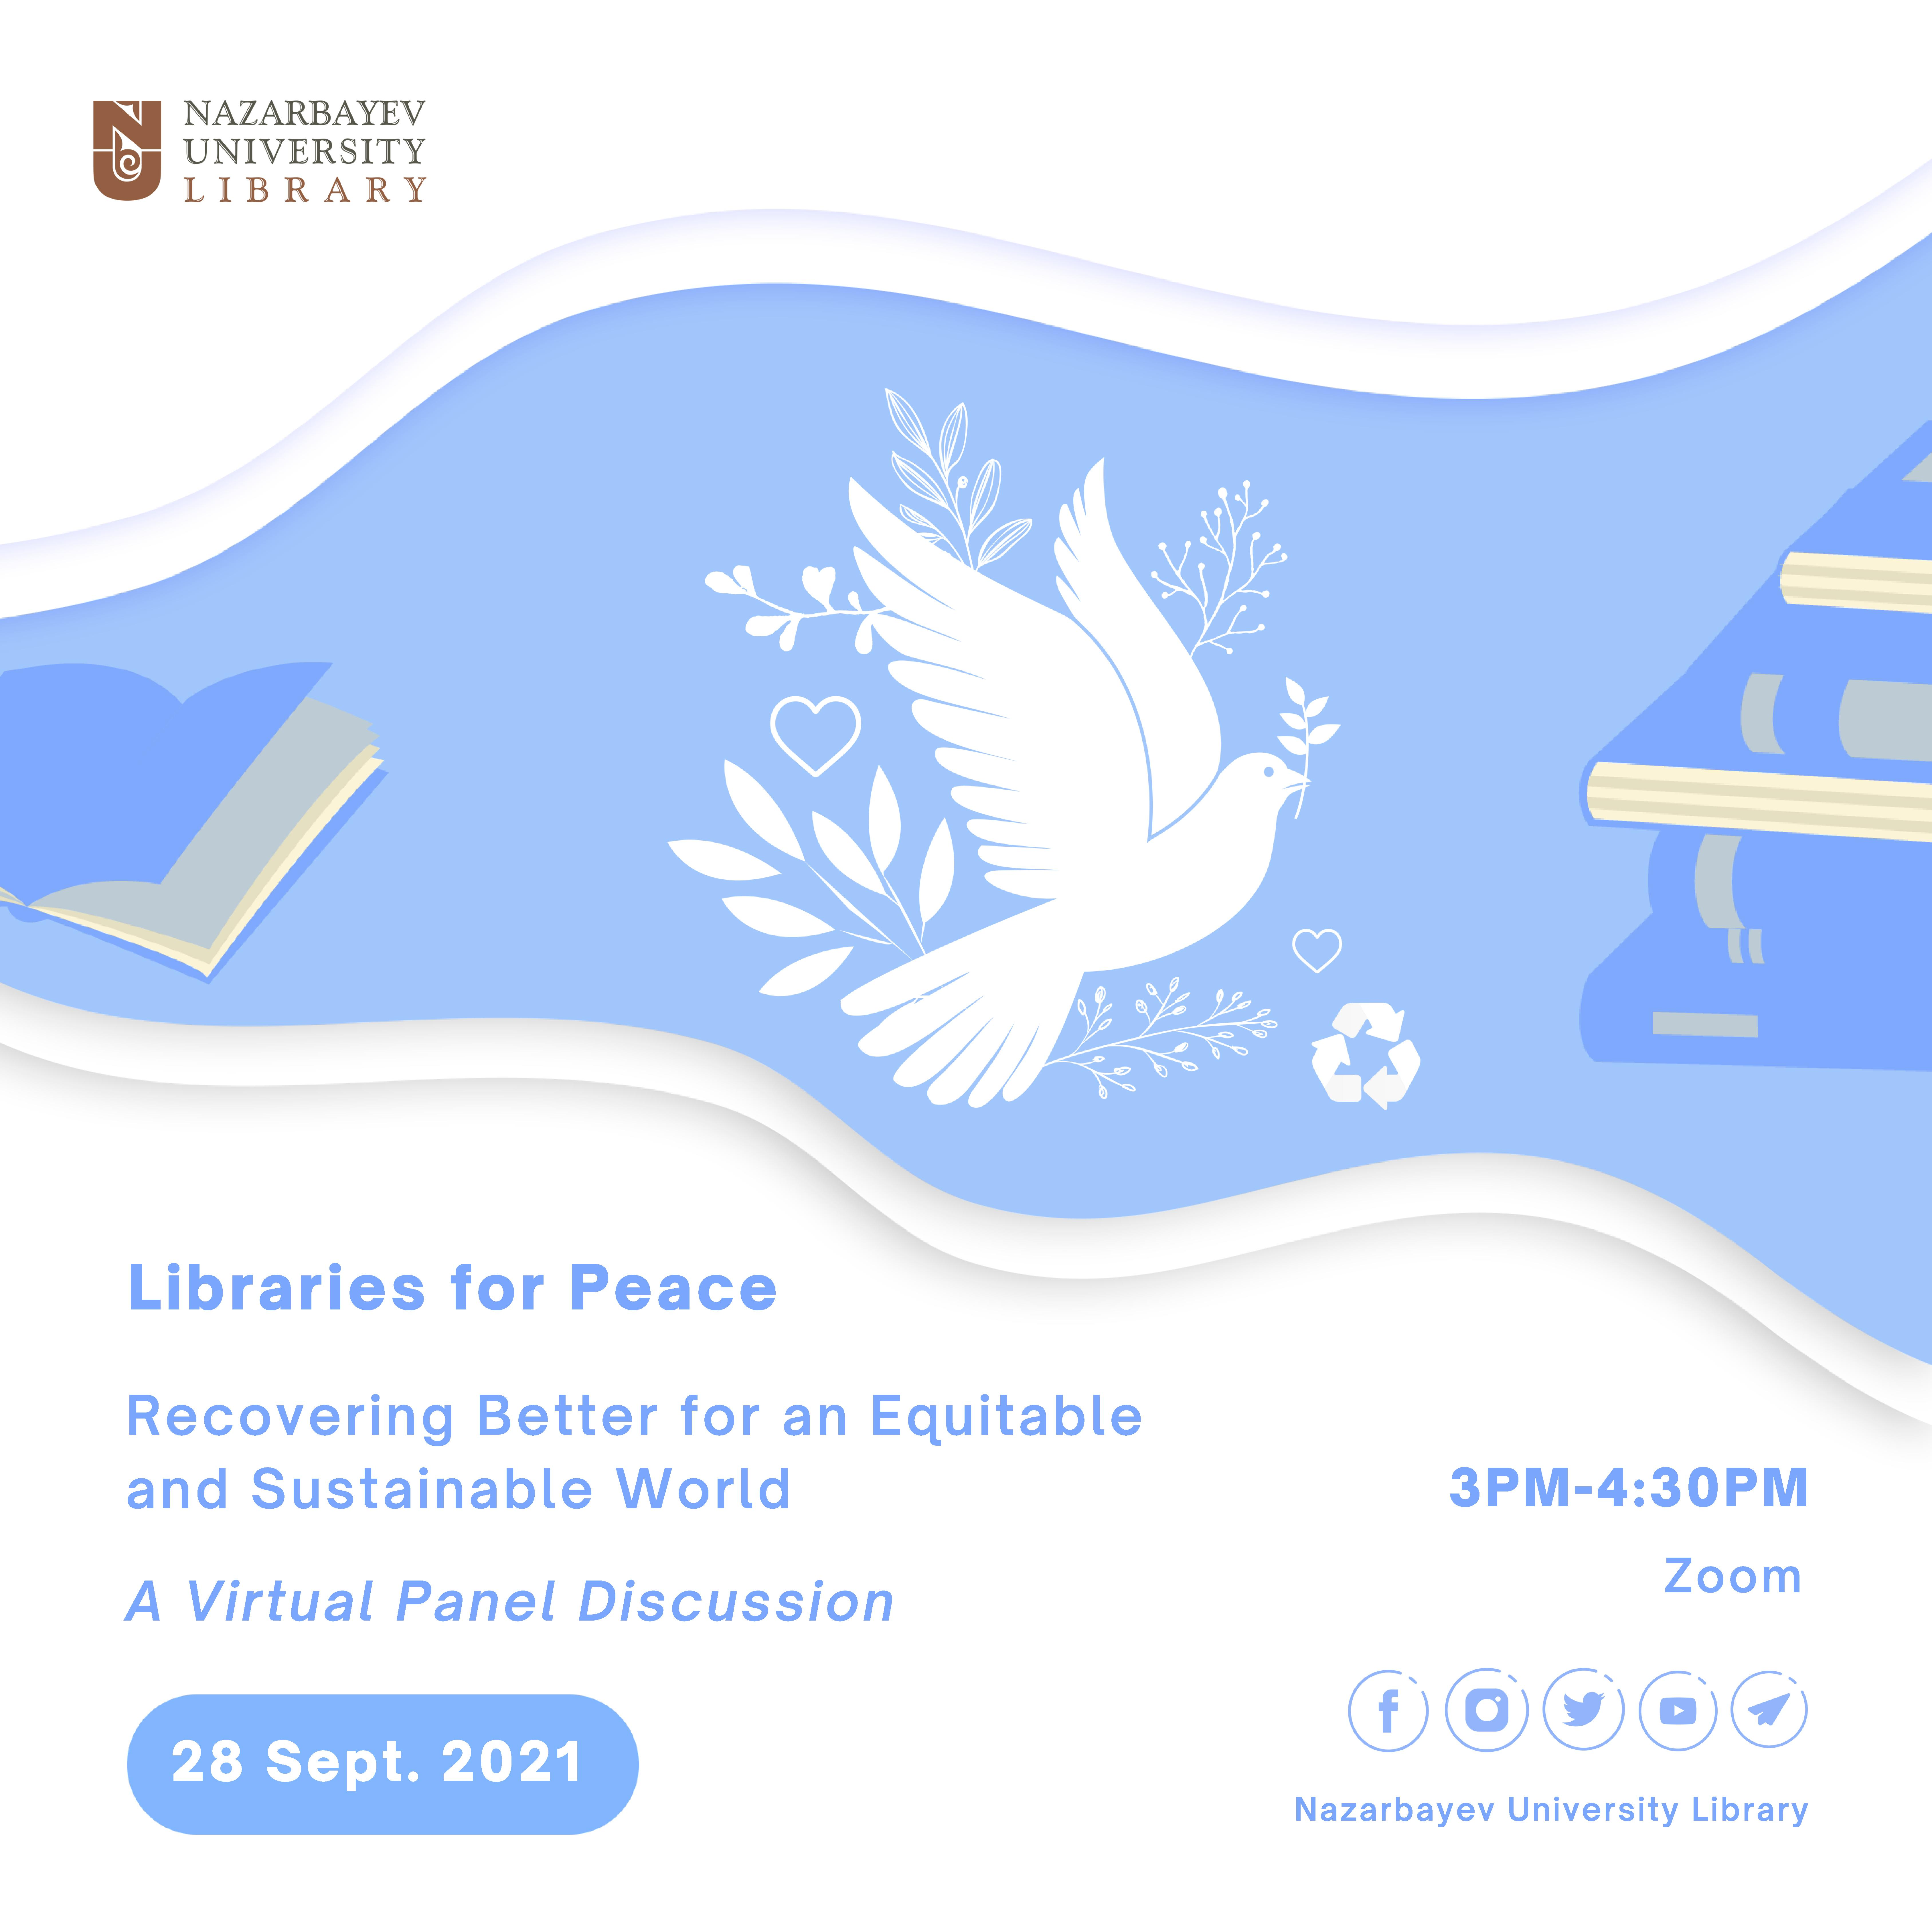 Libraries for Peace Day 2021